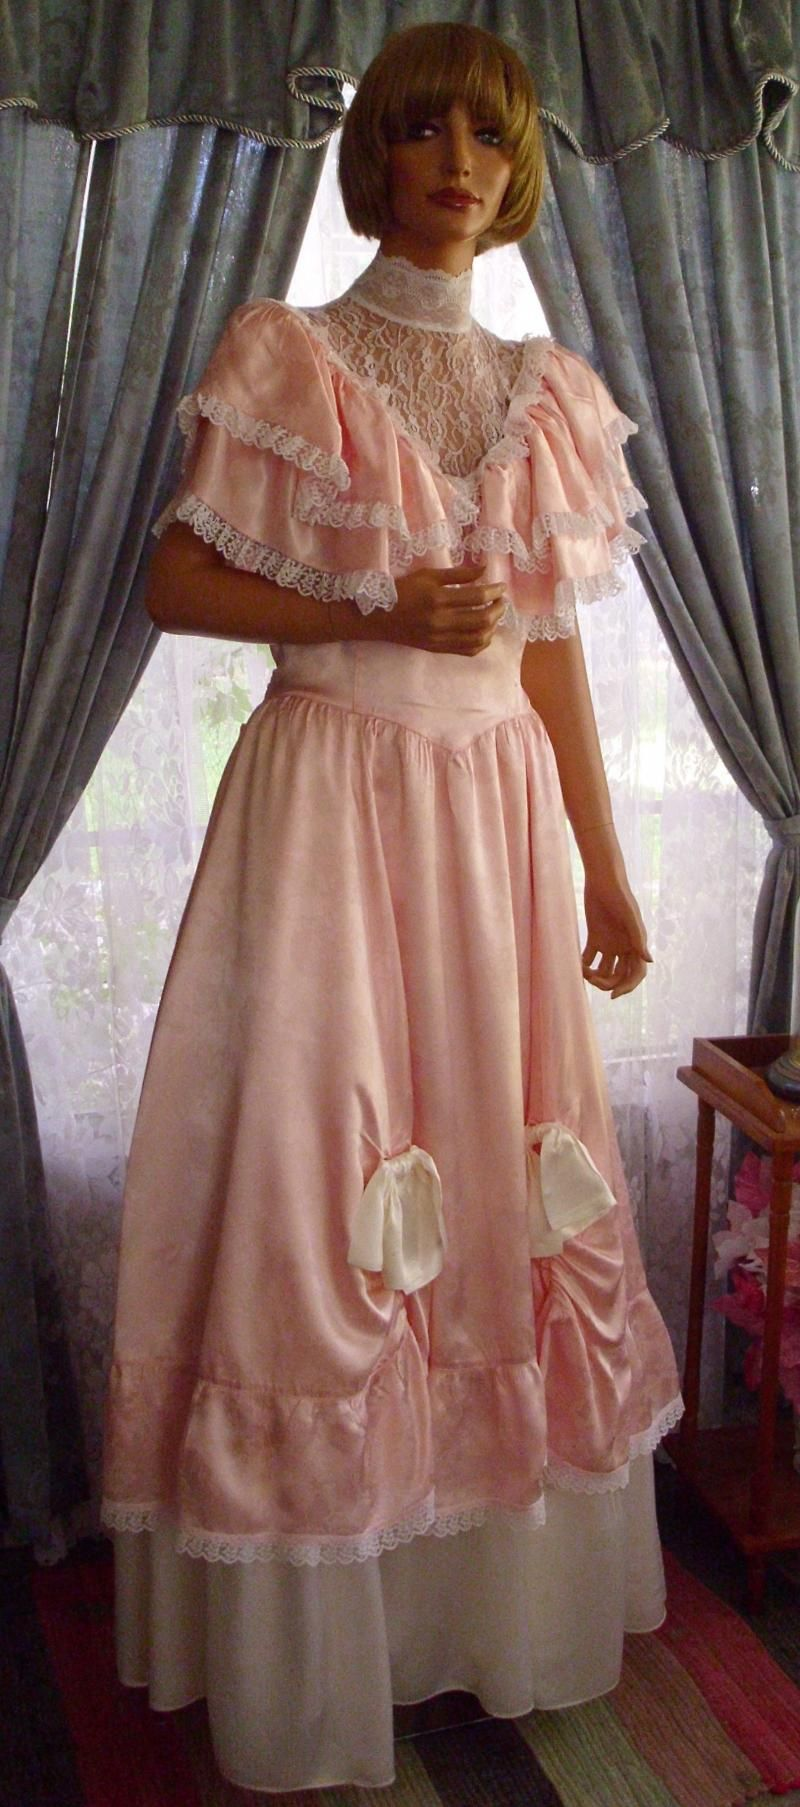 Gunne Sax prom gowns | wedding | Pinterest | Gunne sax, Prom and Gowns